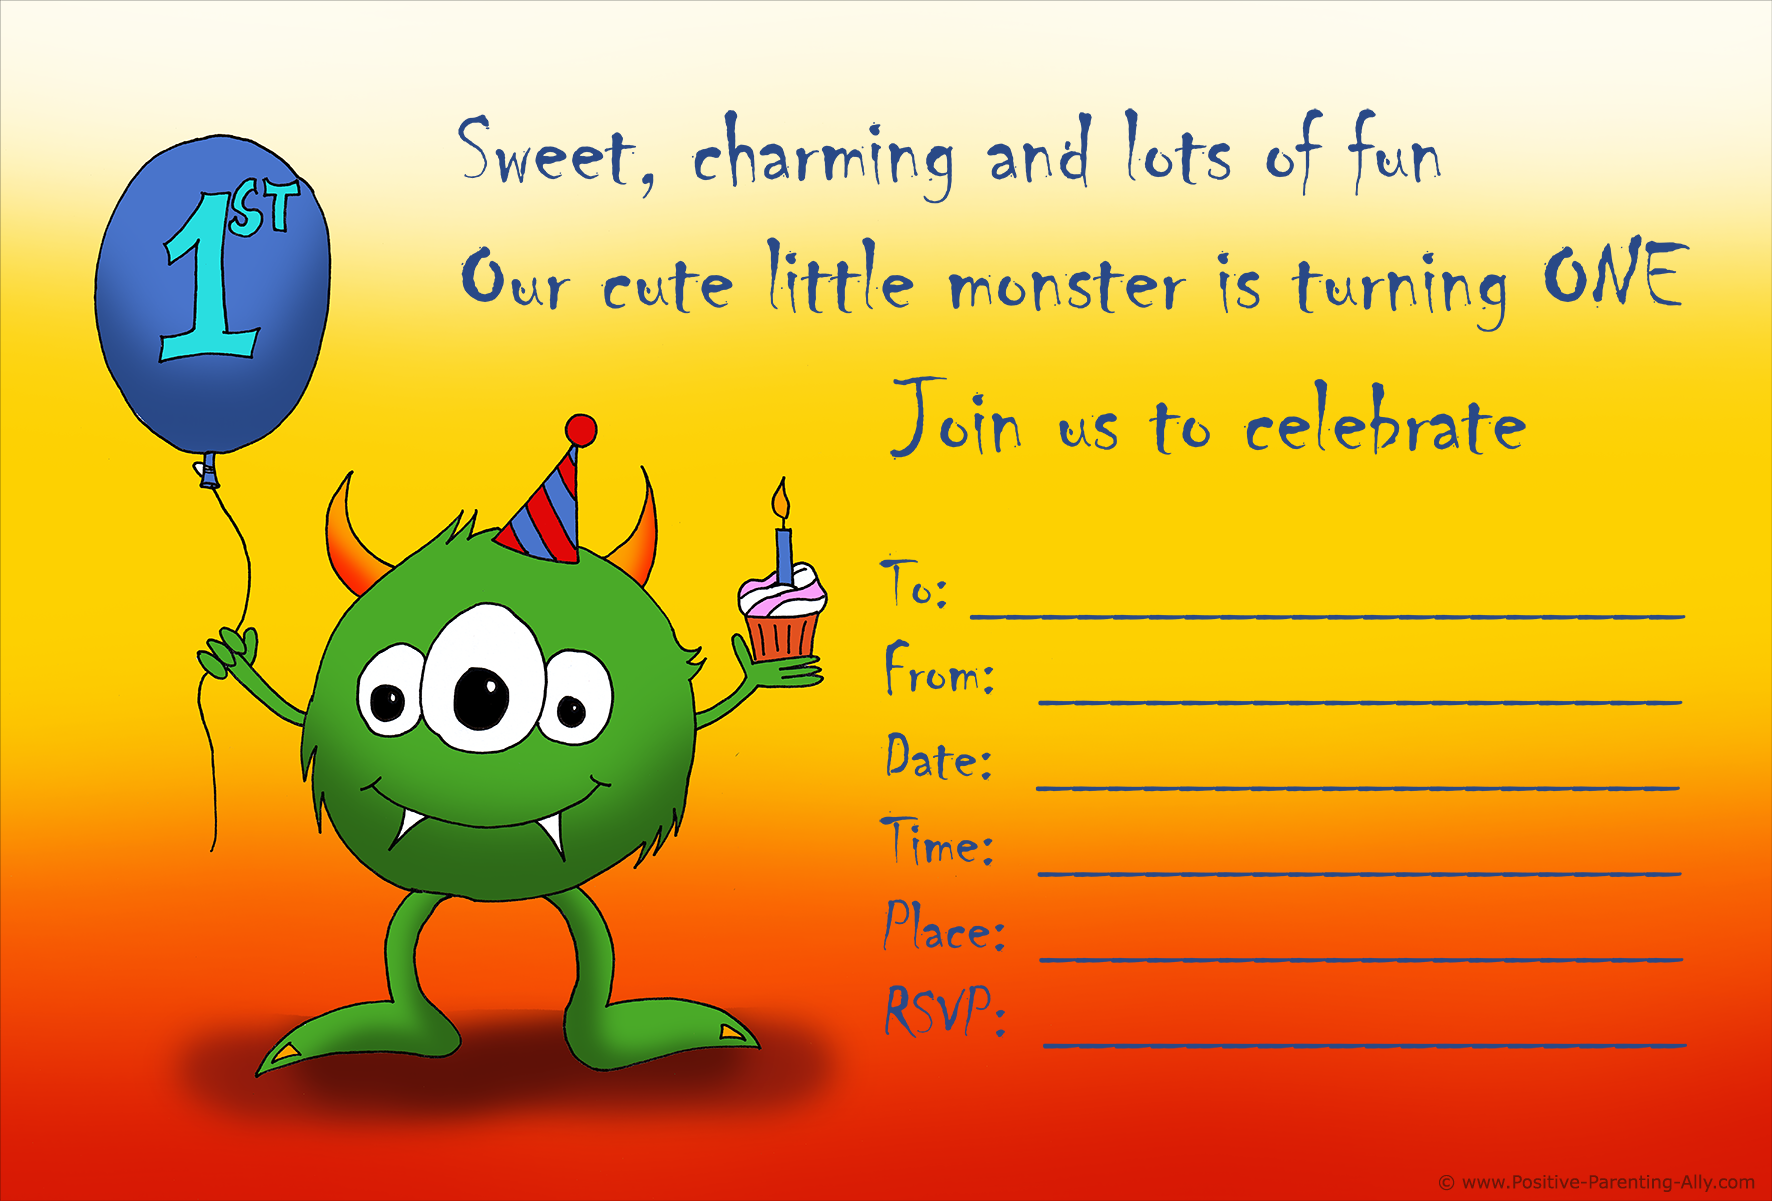 Cute monster birthday invitation to print. Celebrating the first birthday.